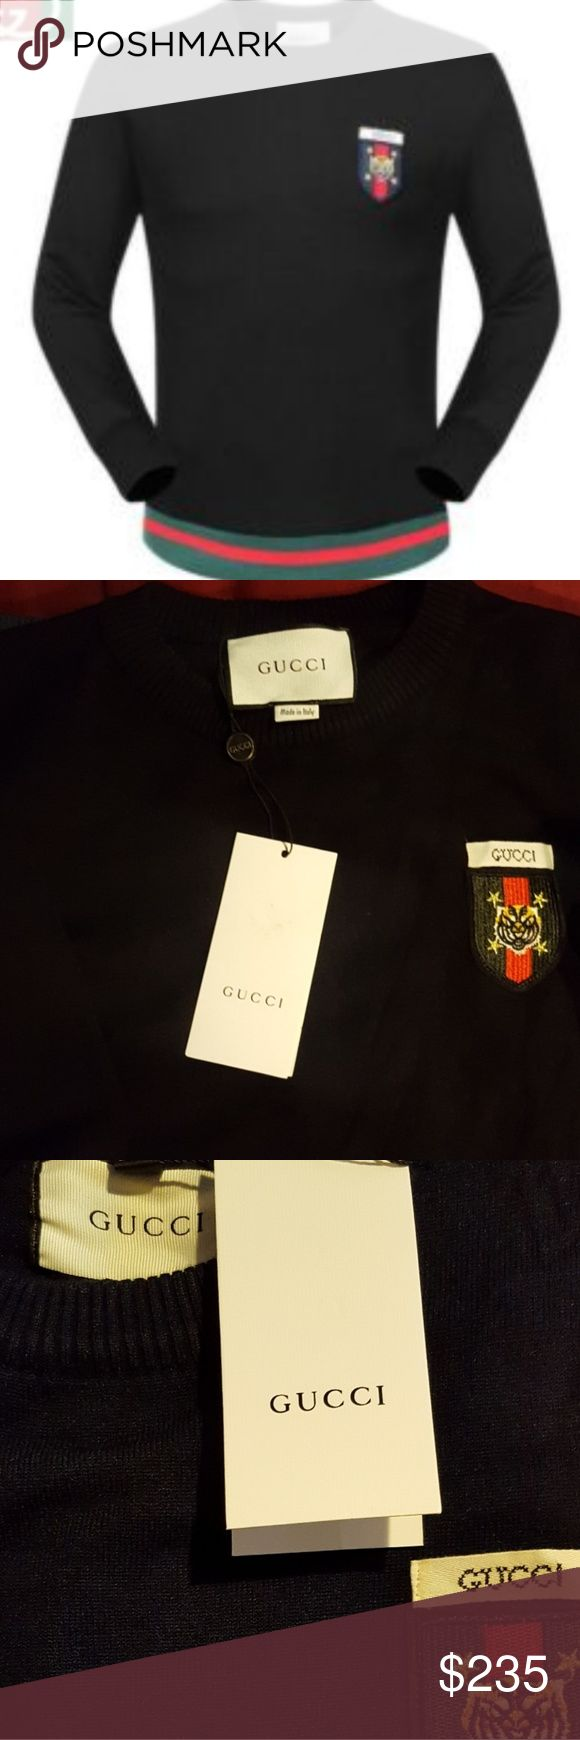 Gucci black Oxford sweater Gucci black sweater that features a luxuruous cotton material that highlights the emblematic insignia to this oxford edition sweater. Comes with tags and accessories Gucci Sweaters Crewneck